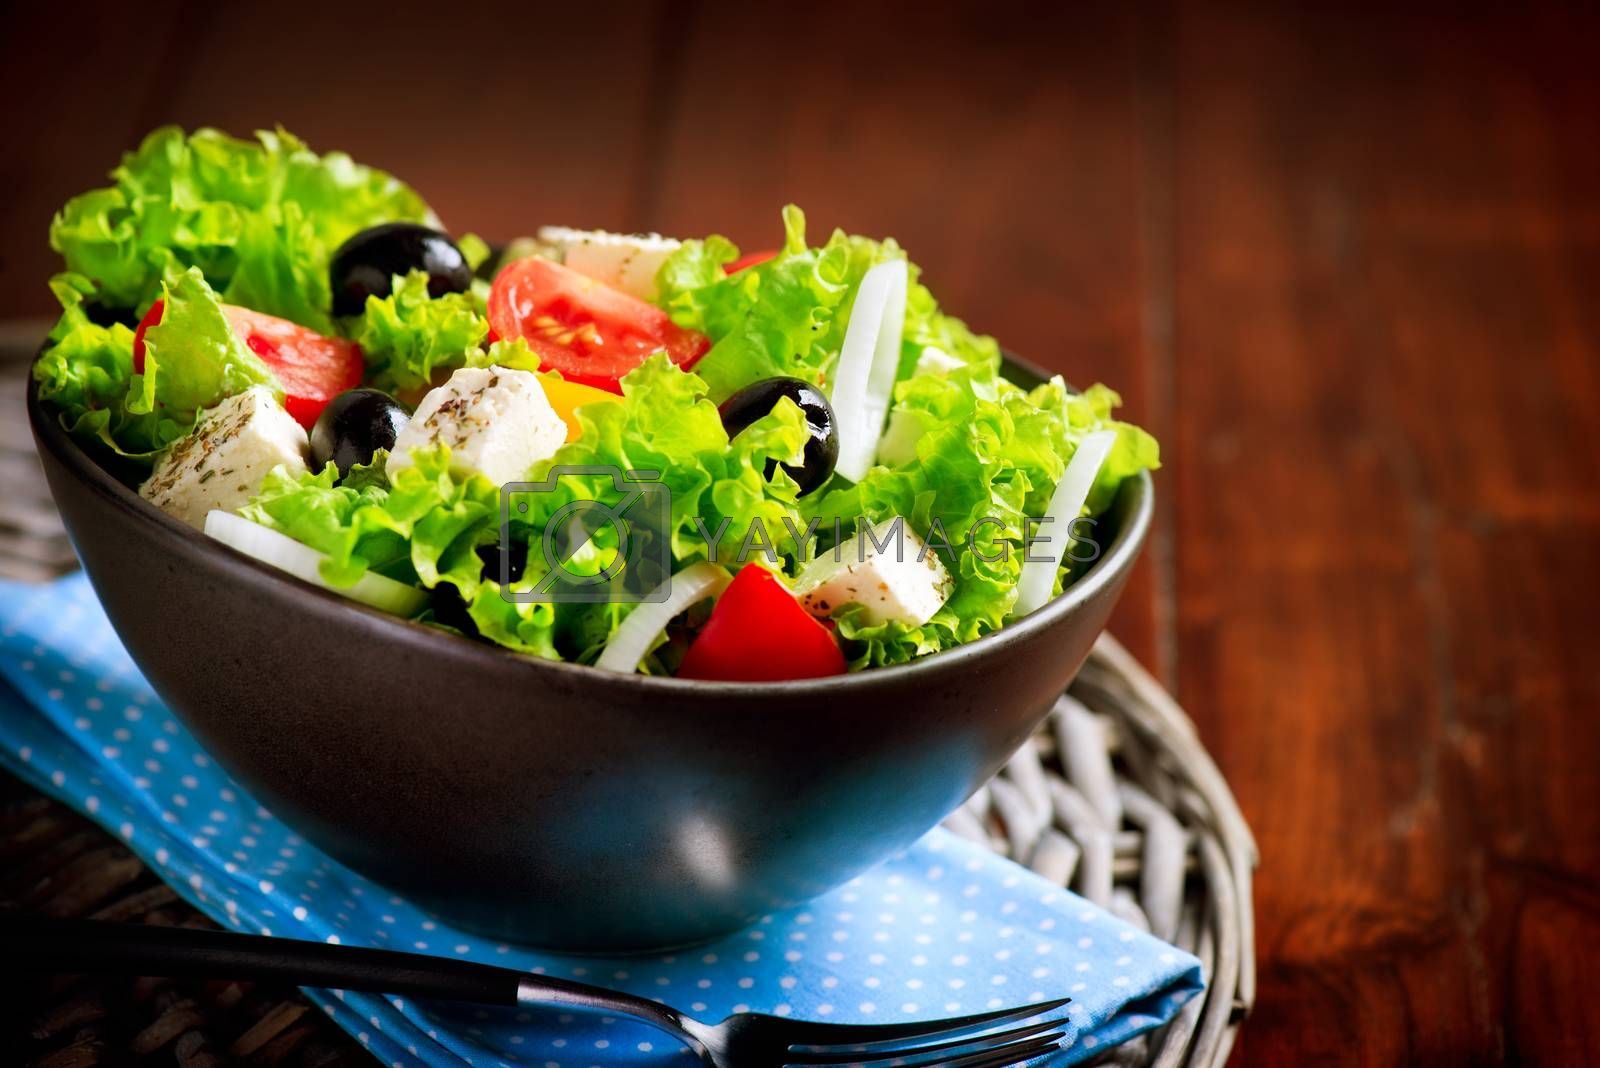 Greek Salad Bowl with Feta Cheese, Tomatoes and Olives by Subbotina Anna